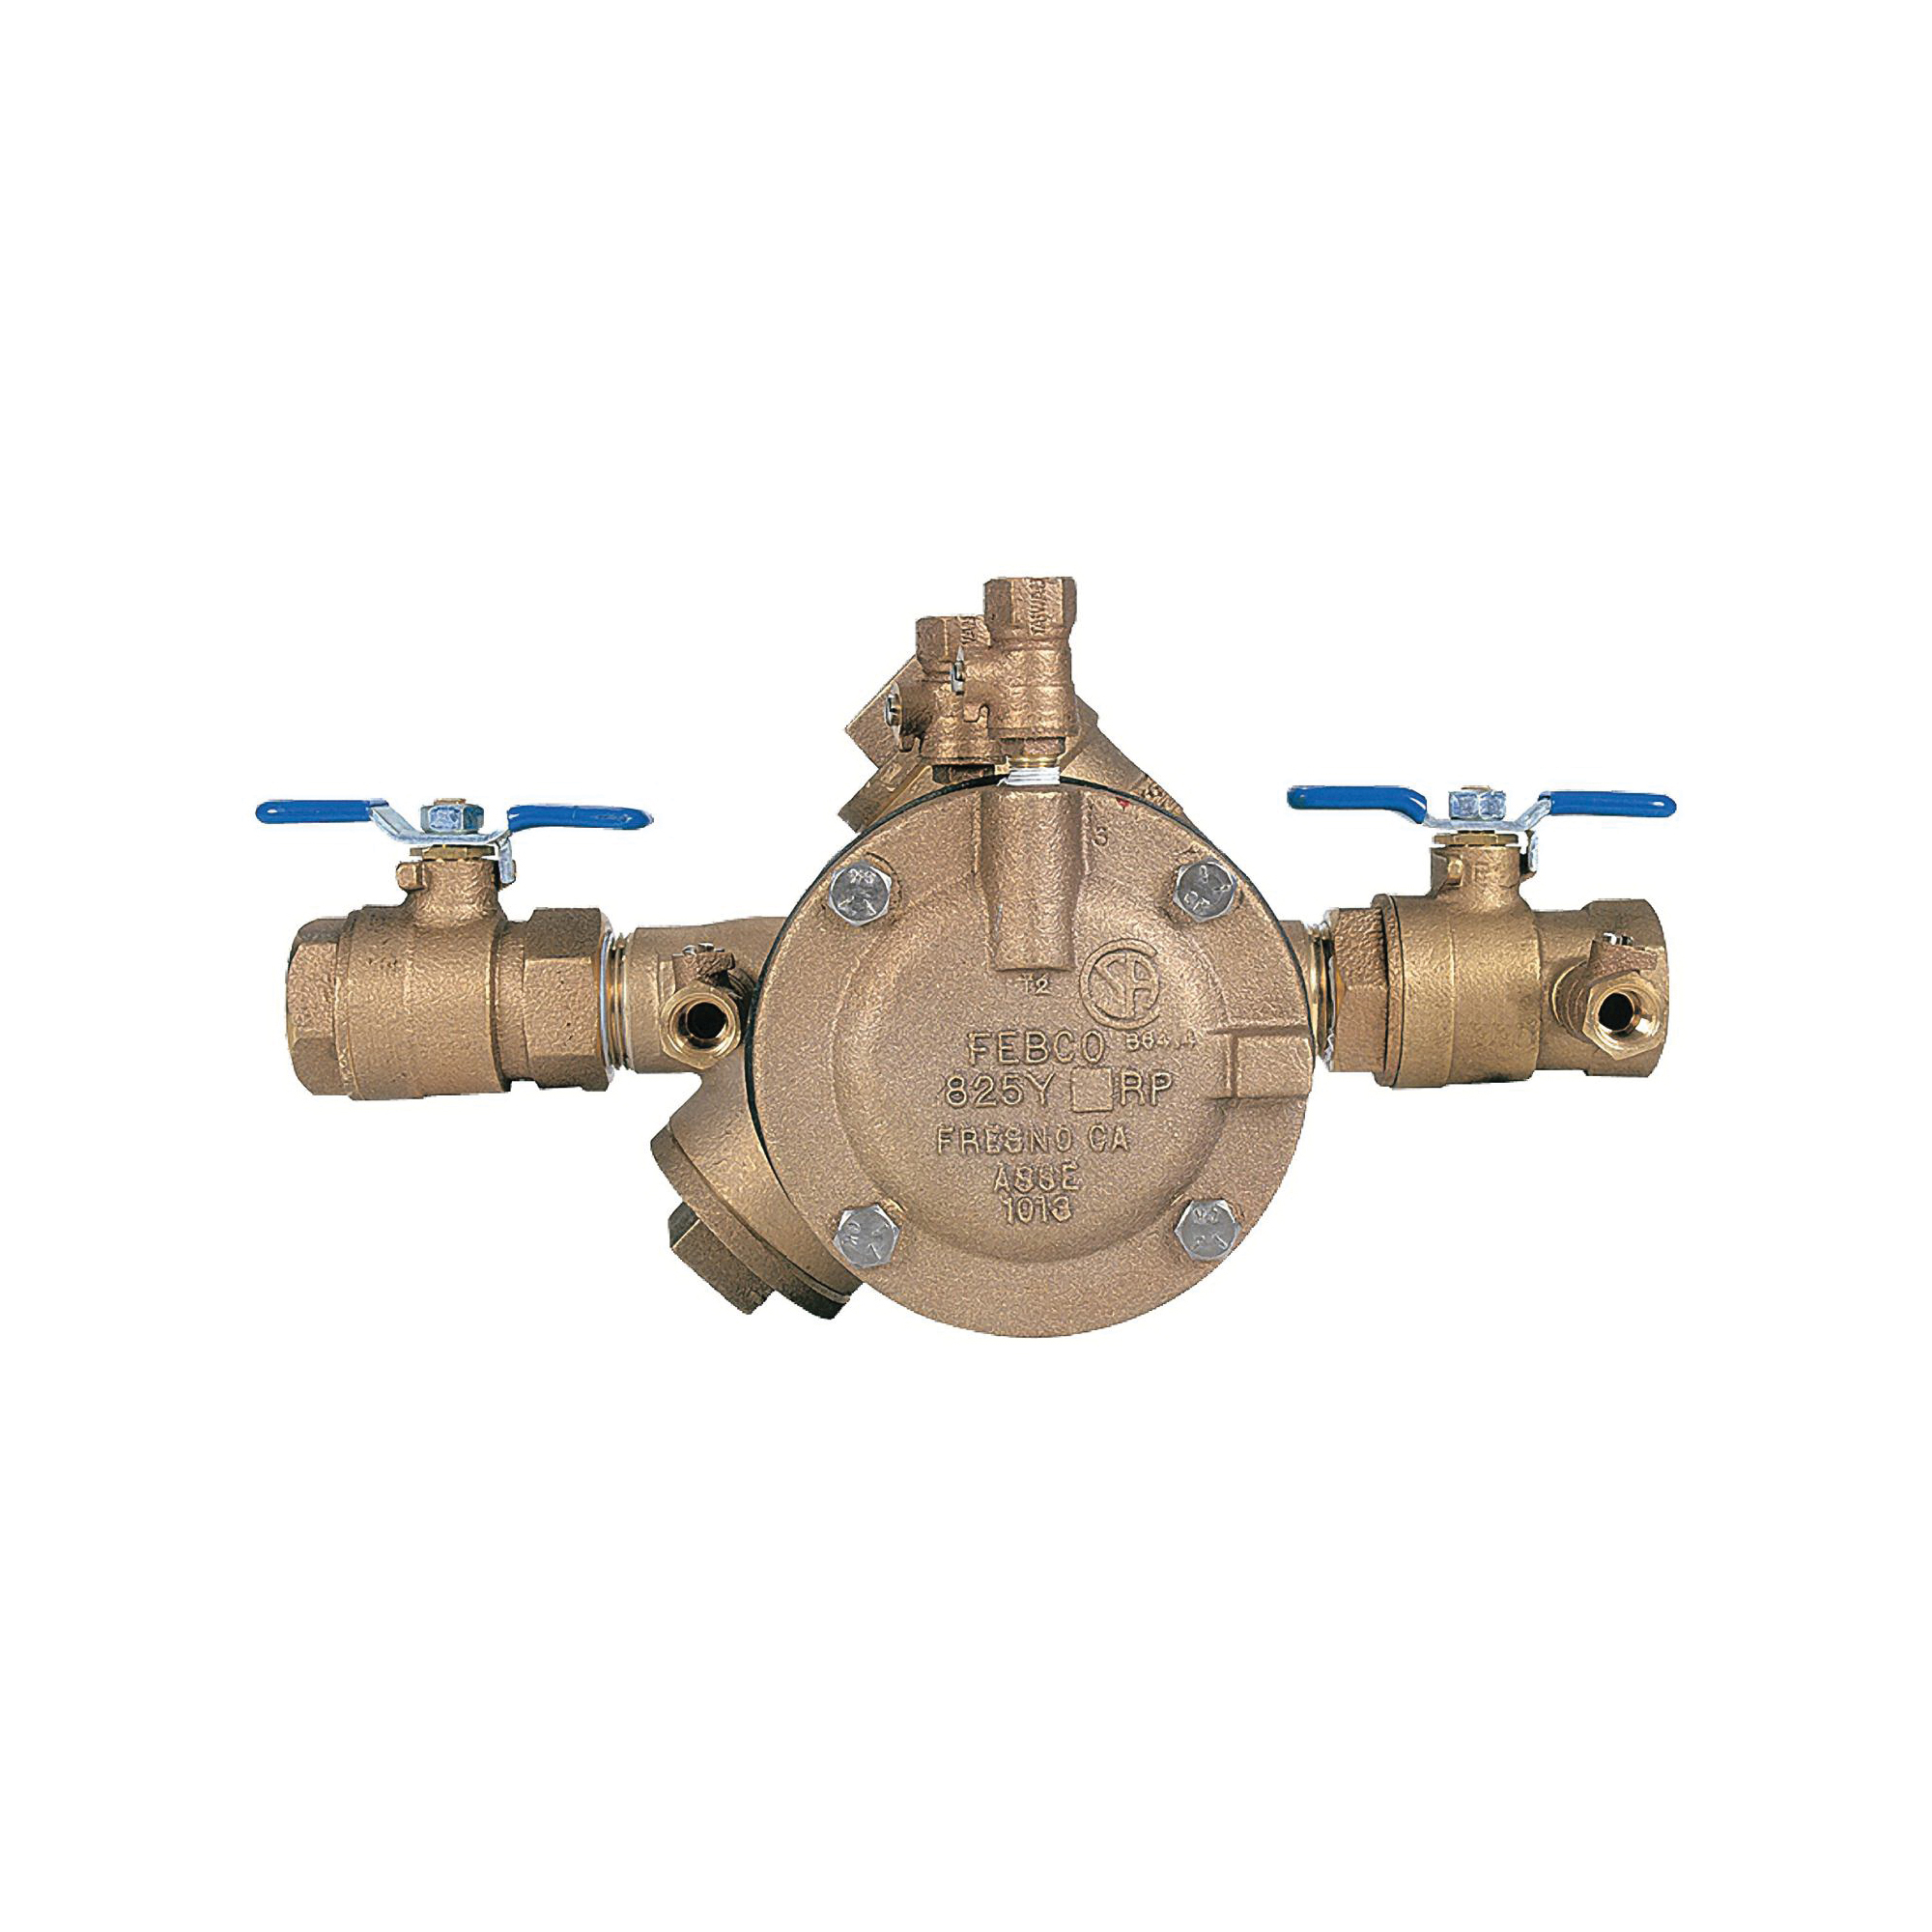 Febco® 0683006 LF825Y Y-Pattern Reduced Pressure Zone Assembly, 3/4 in, Thread, Quarter-Turn Ball Valve, Cast Copper Silicon Alloy Body